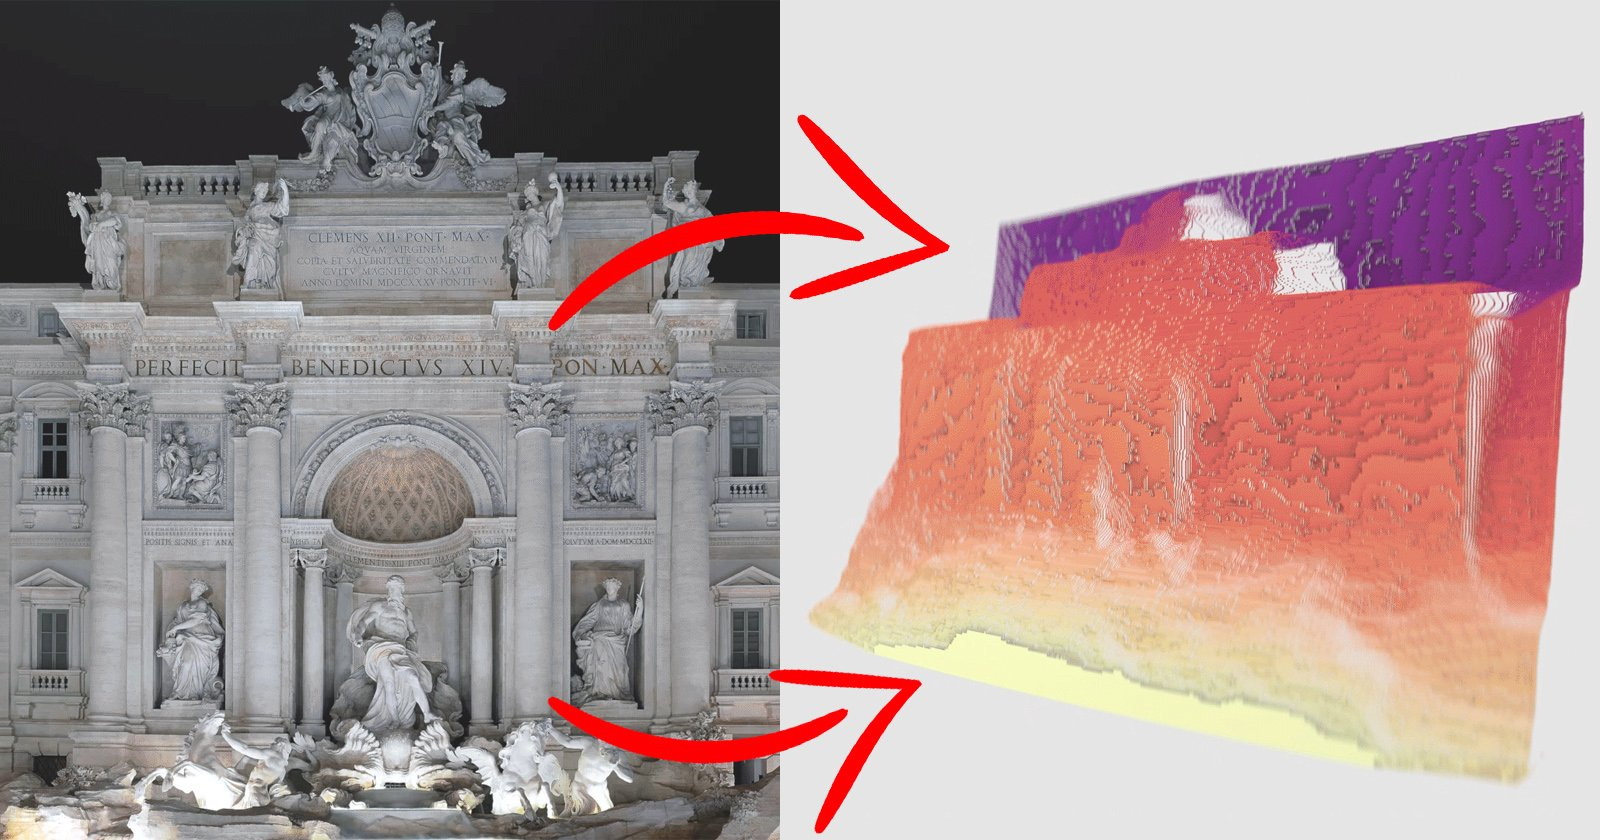 Facebook Now Lets You Turn Any 2D Photo into a 3D Image Using AI - PetaPixel